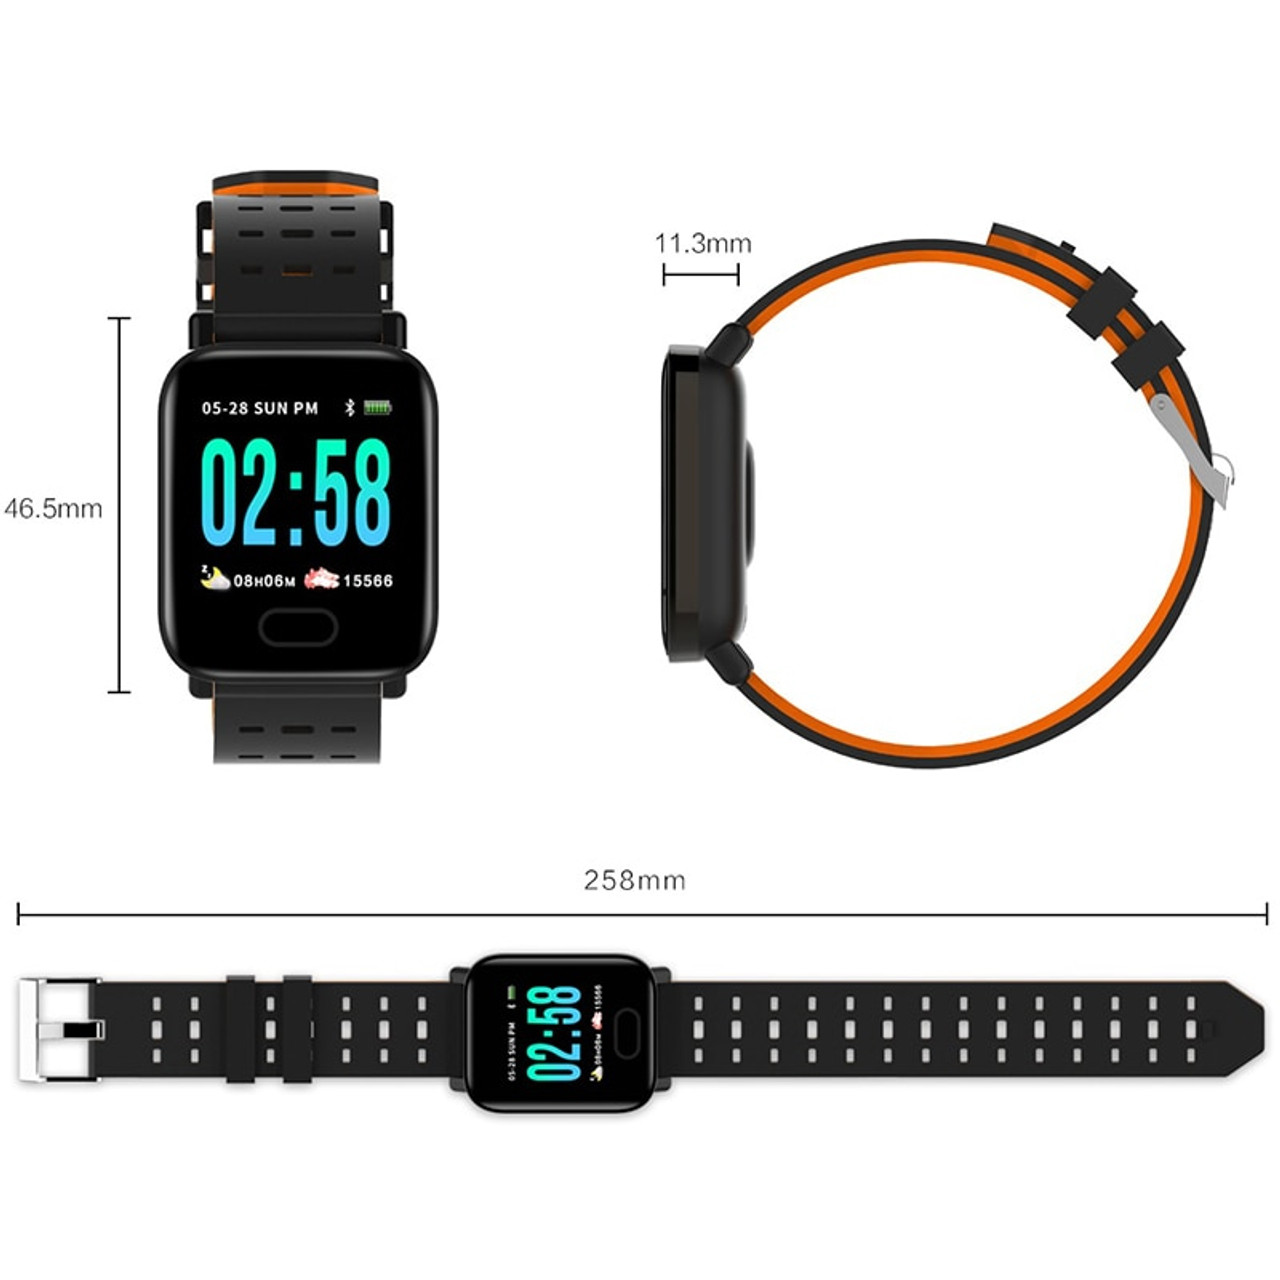 fa1c640c2b38 ... Reloj inteligente bluetooth bip smartwatch hombre relogio relojes  digital Heart rate monitoring smart watch message display ...